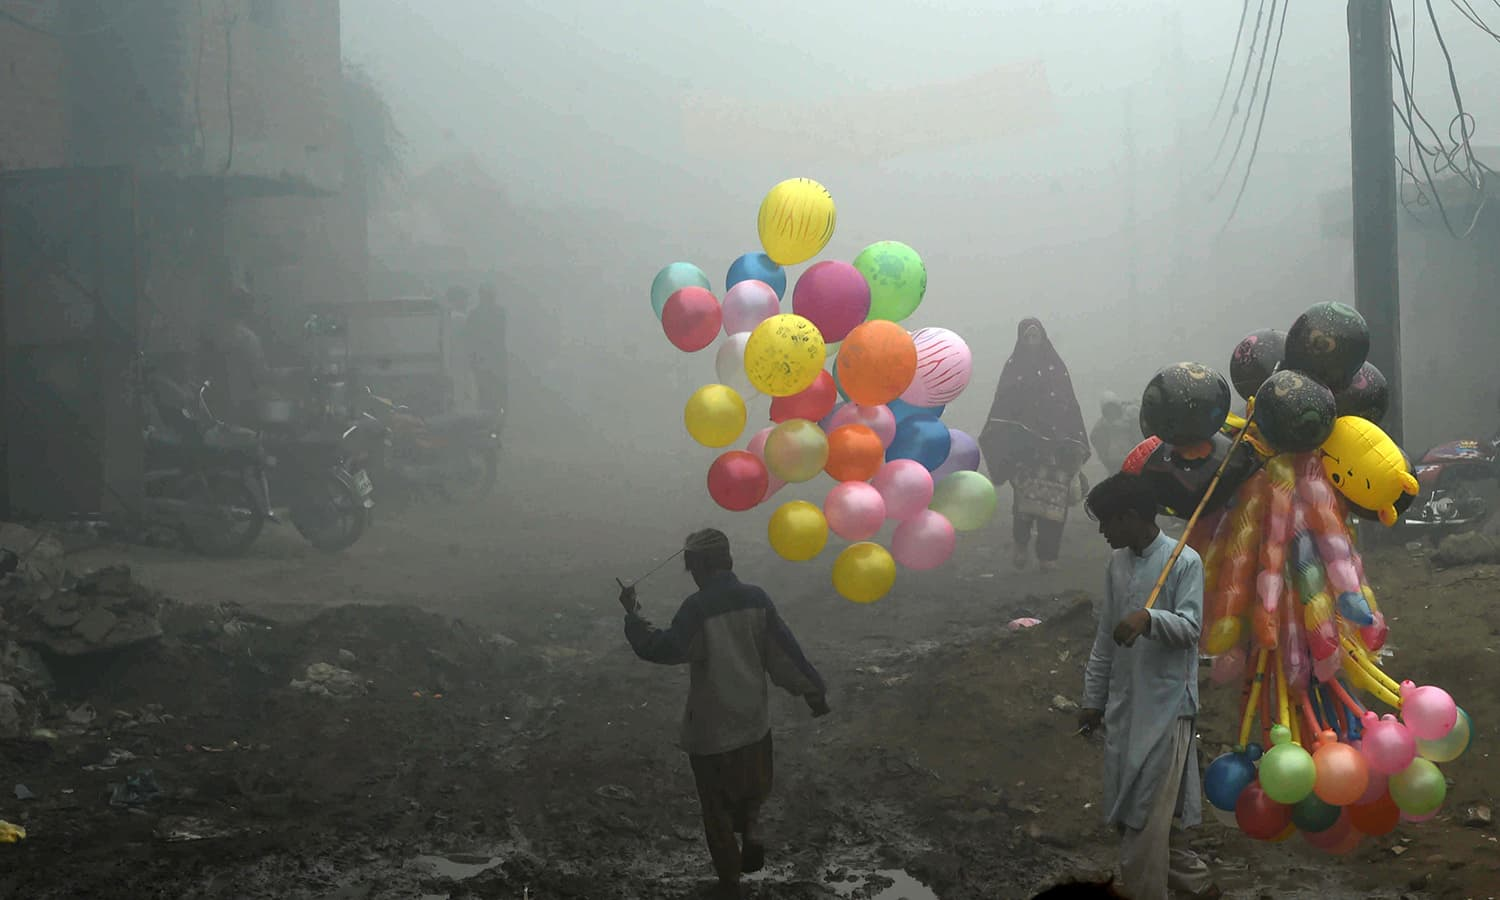 Pakistani balloon vendors cross a street in heavy fog in Lahore. ─AFP